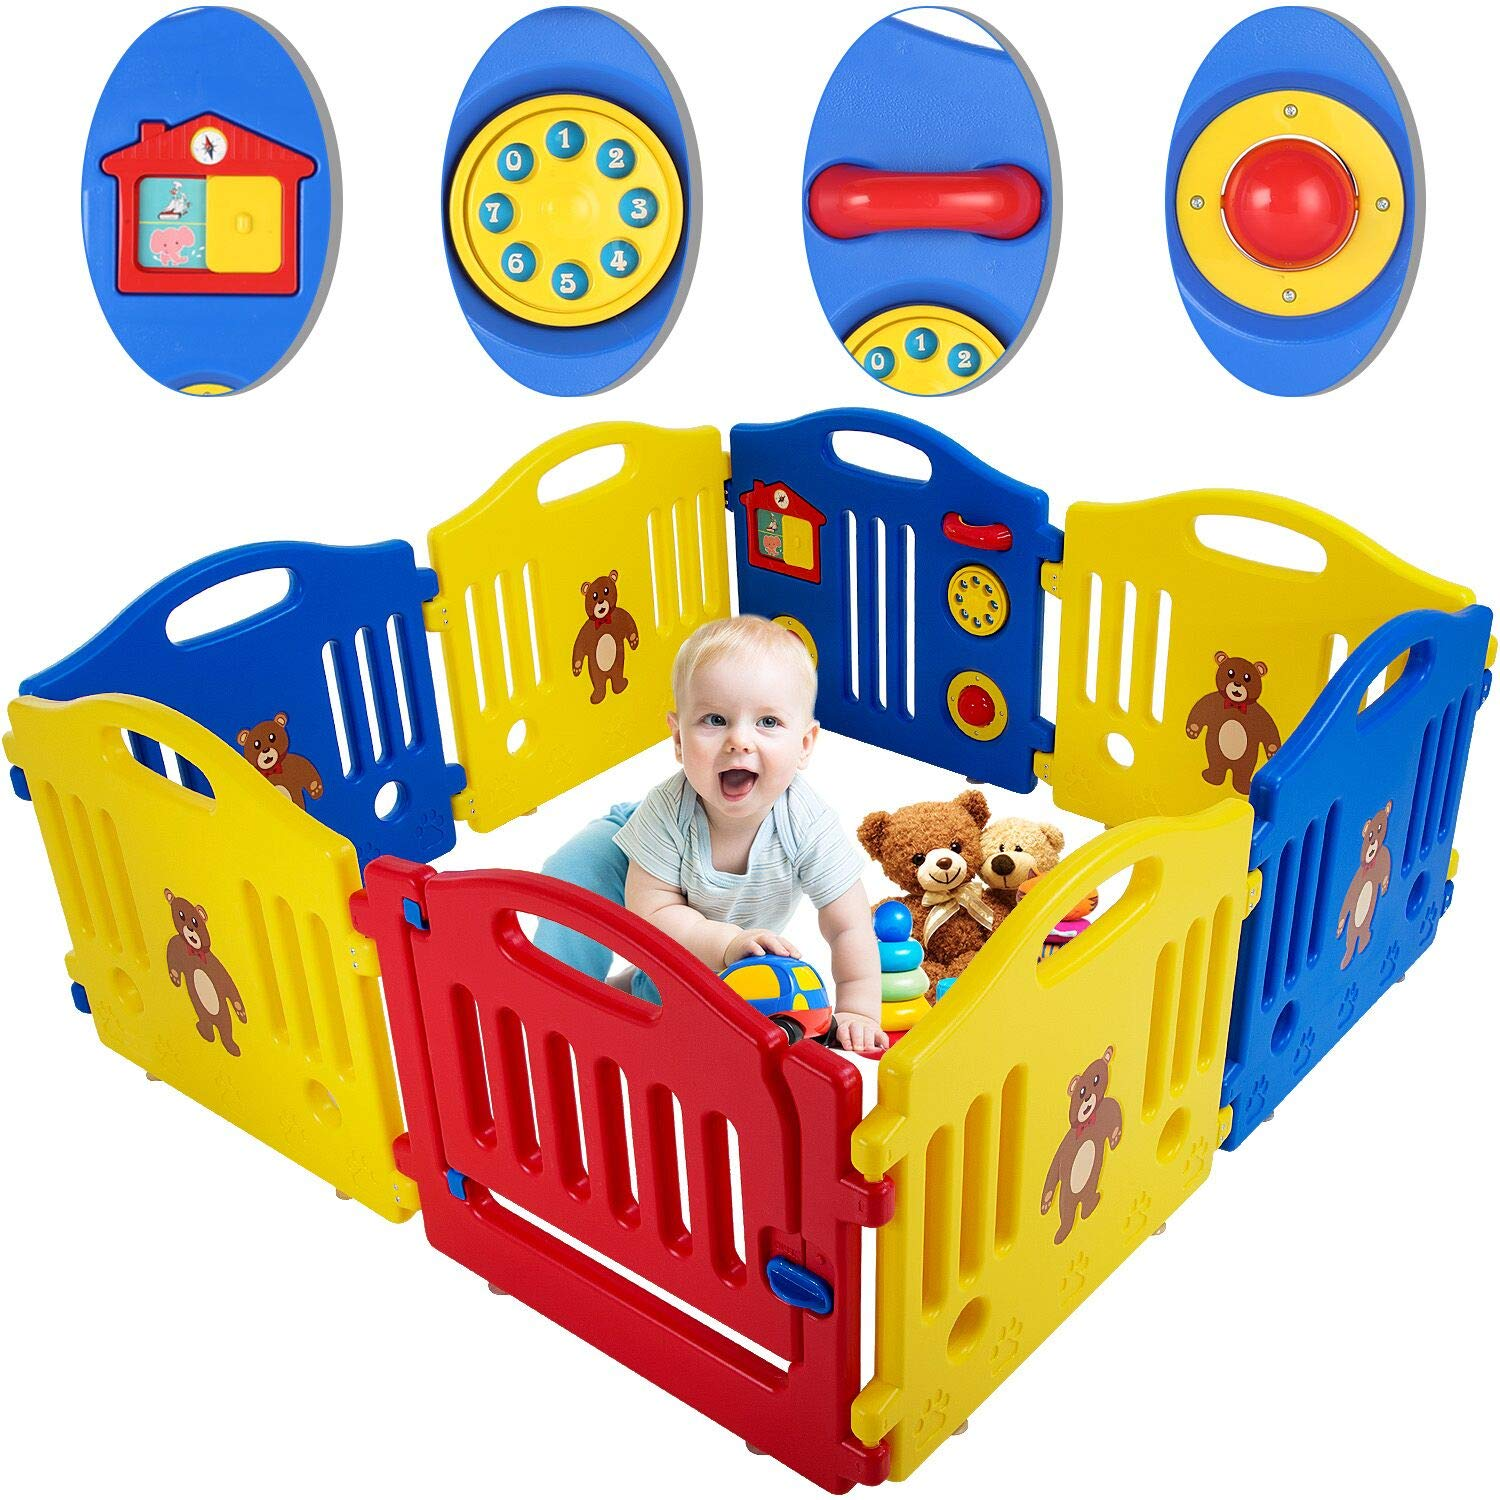 B00XYW7KKY Baby Playpen for Babies Baby Play Playards 8 Panels Infants Toddler Baby Fence Safety Kids Play Pens Indoor with Activity Board 718ZfaV10fL._SL1500_